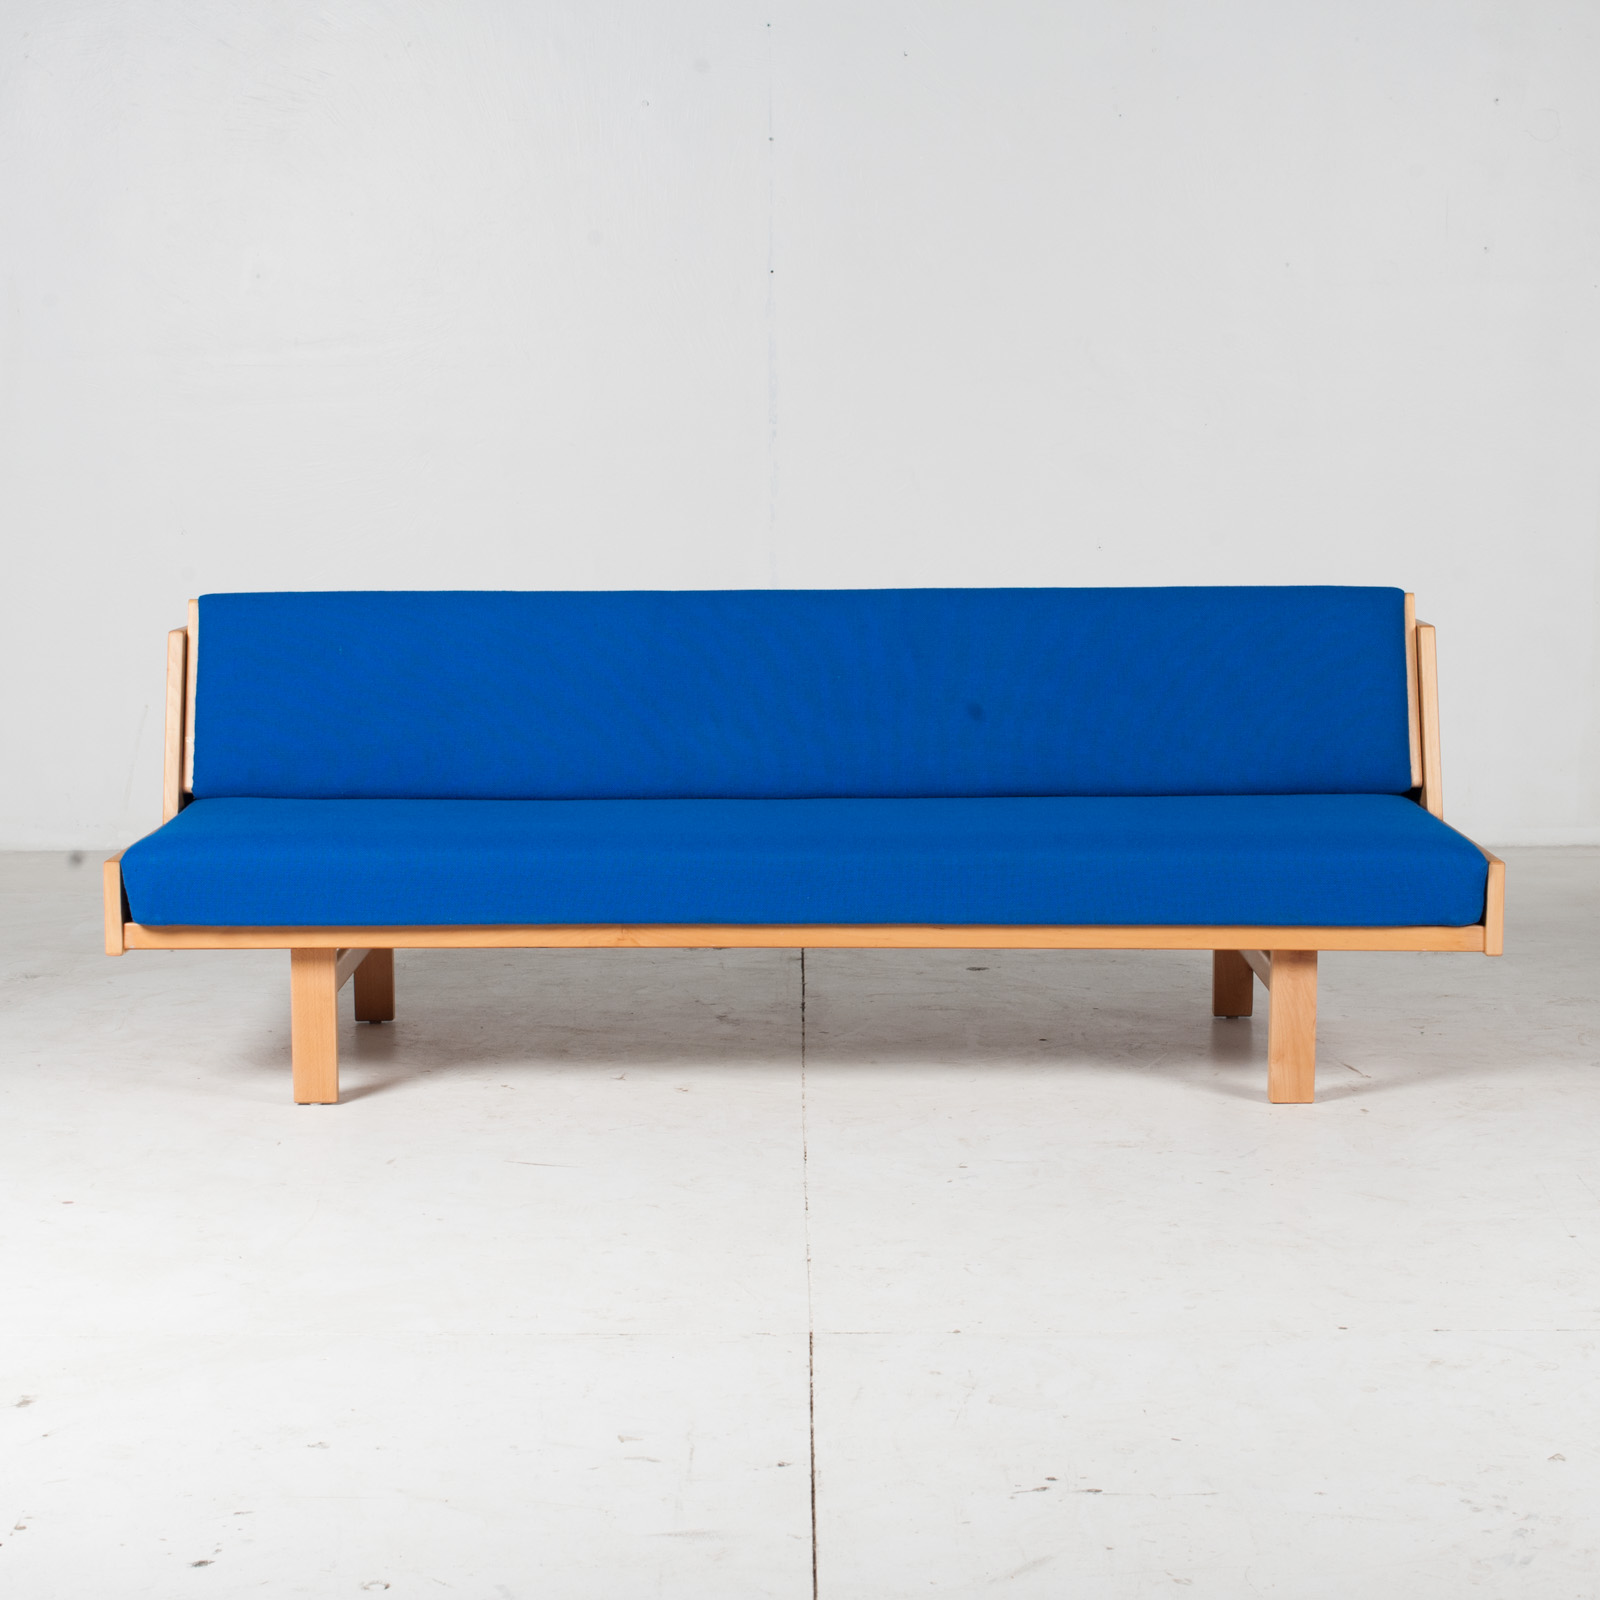 Ge 258 Daybed By Hans J. Wegner In Beech With Original Blue Upholstery For Getama, 1960s, Denmark1